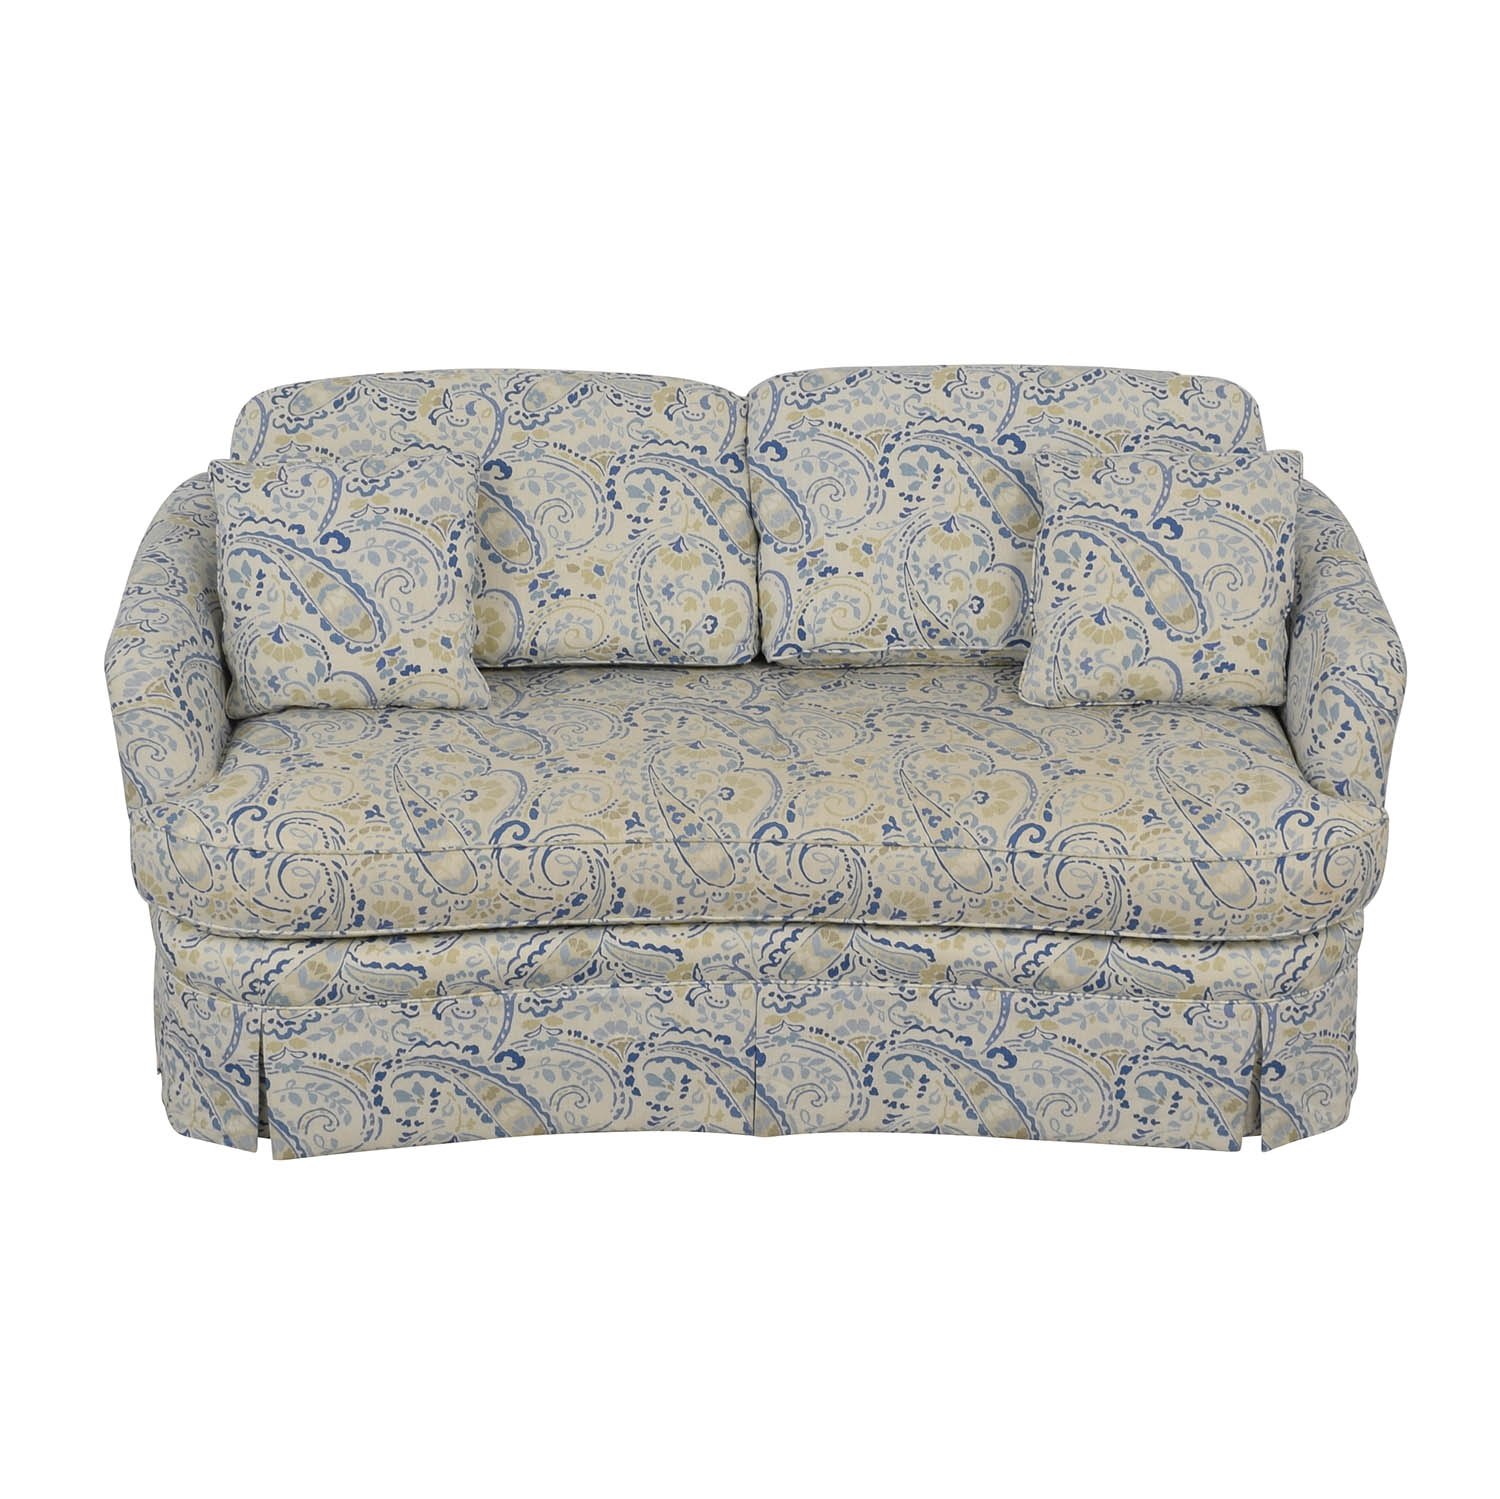 Taylor King Taylor King Multi-Colored Single Cushion Love Seat coupon